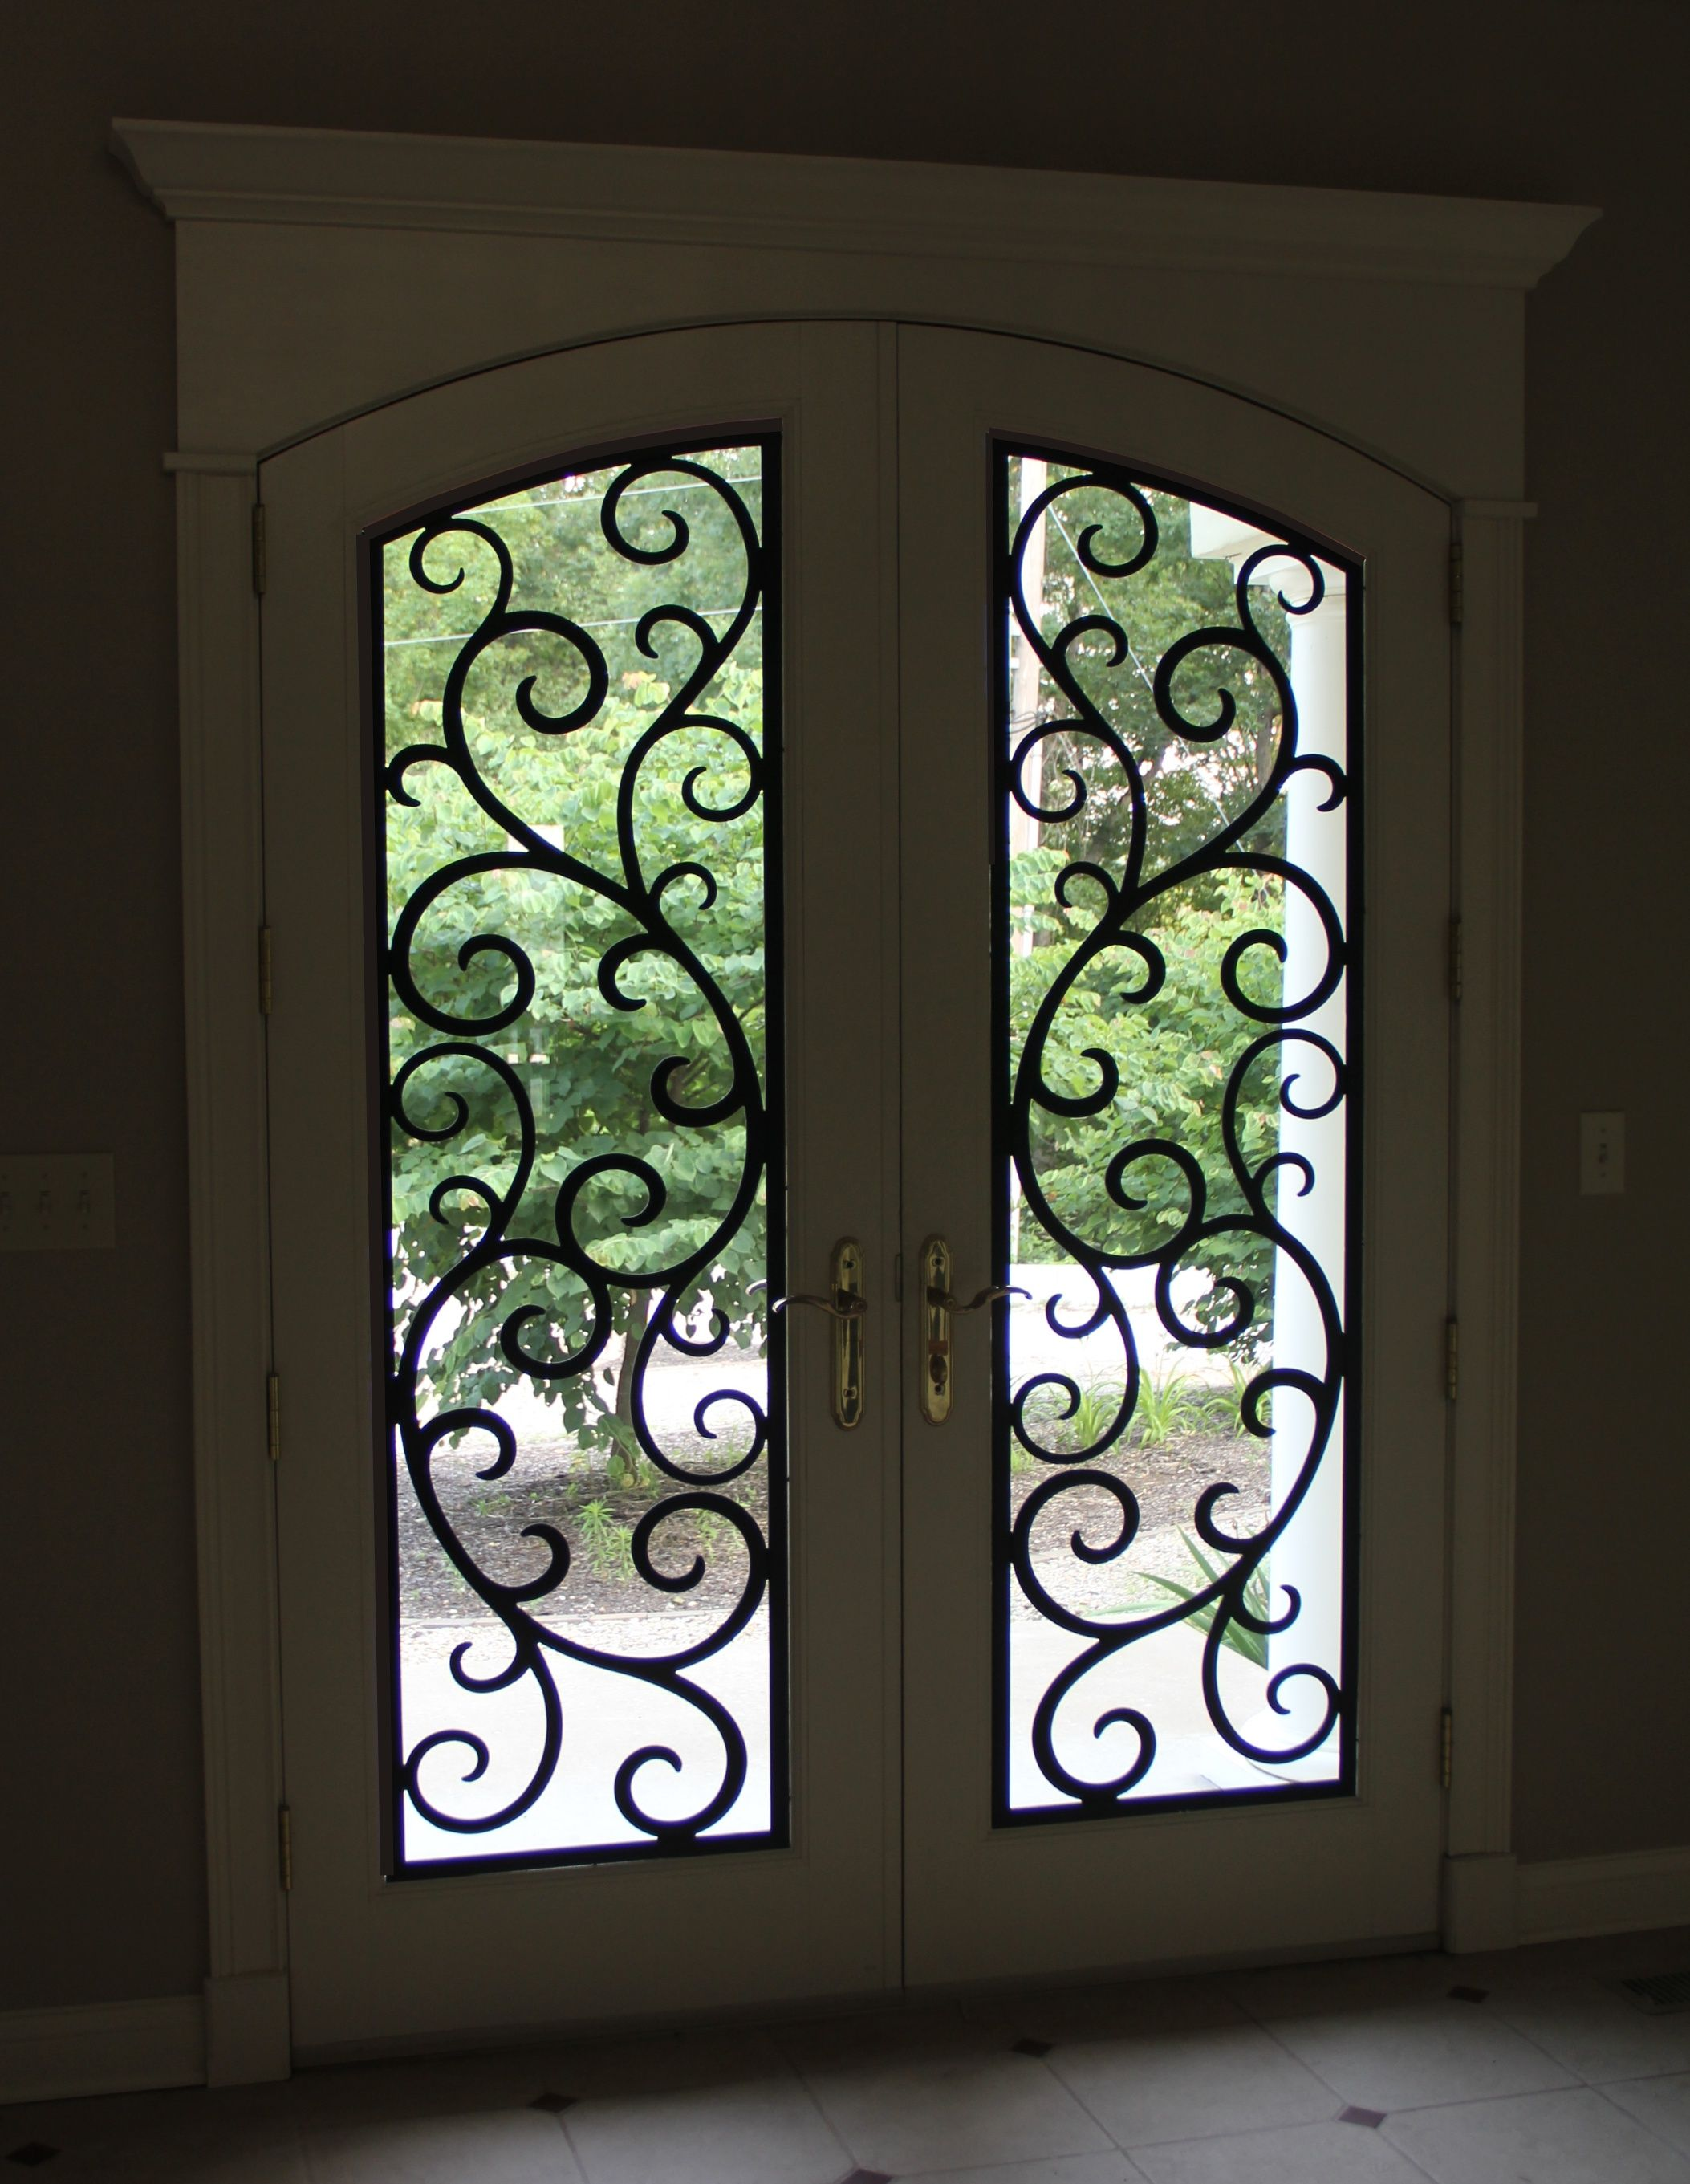 Window grill design ideas  related image  window grill design  pinterest  doors wrought